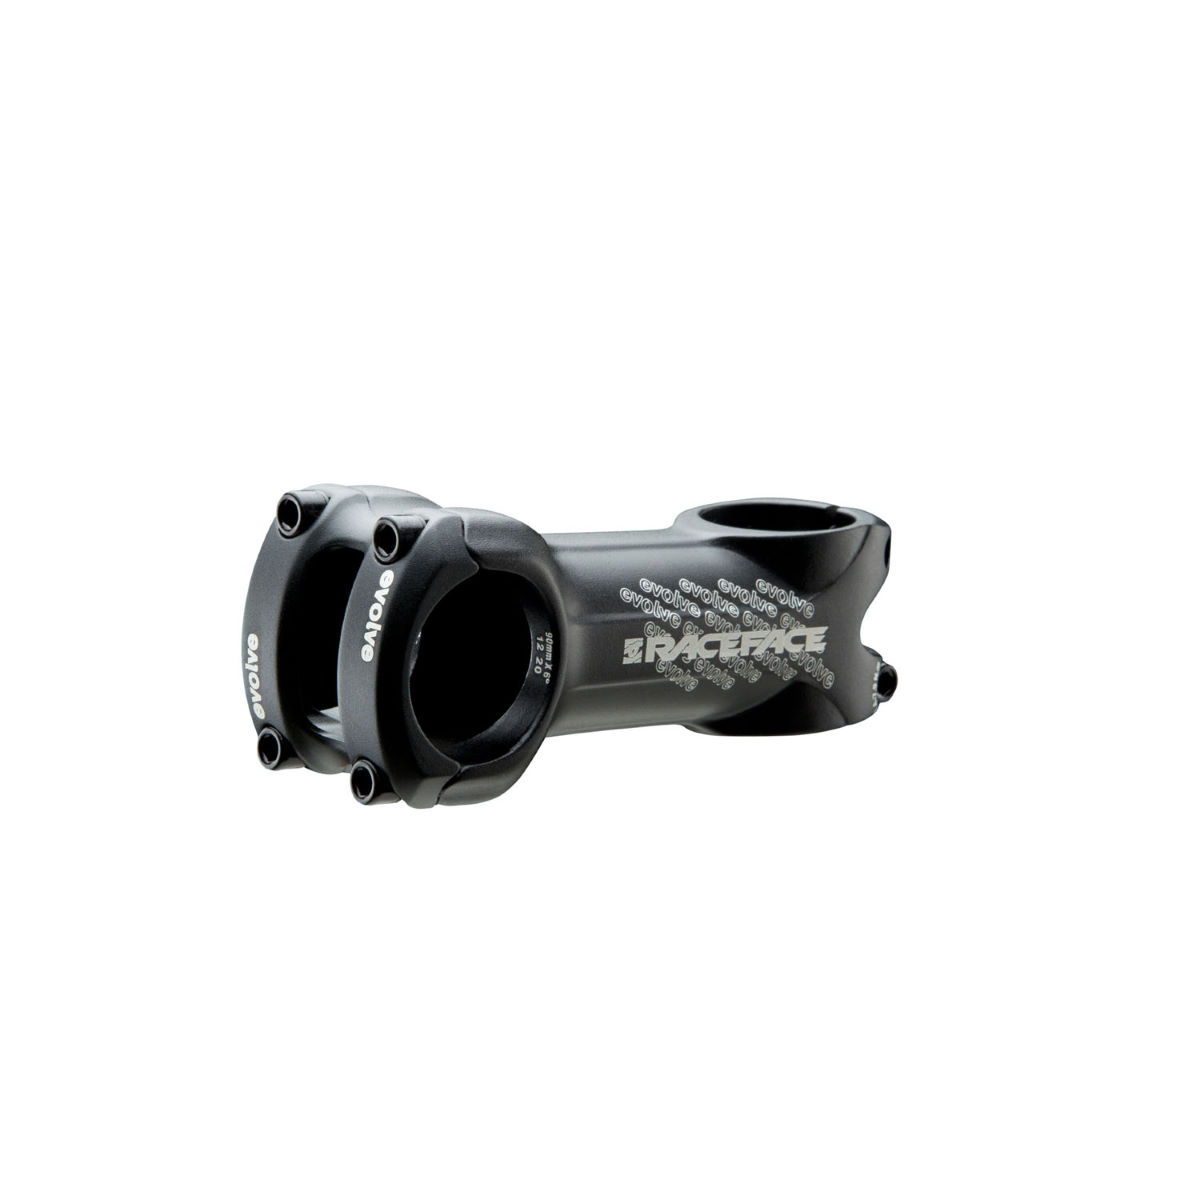 Potence VTT Race Face Evolve - 070mm x 31.8mm Noir Potences